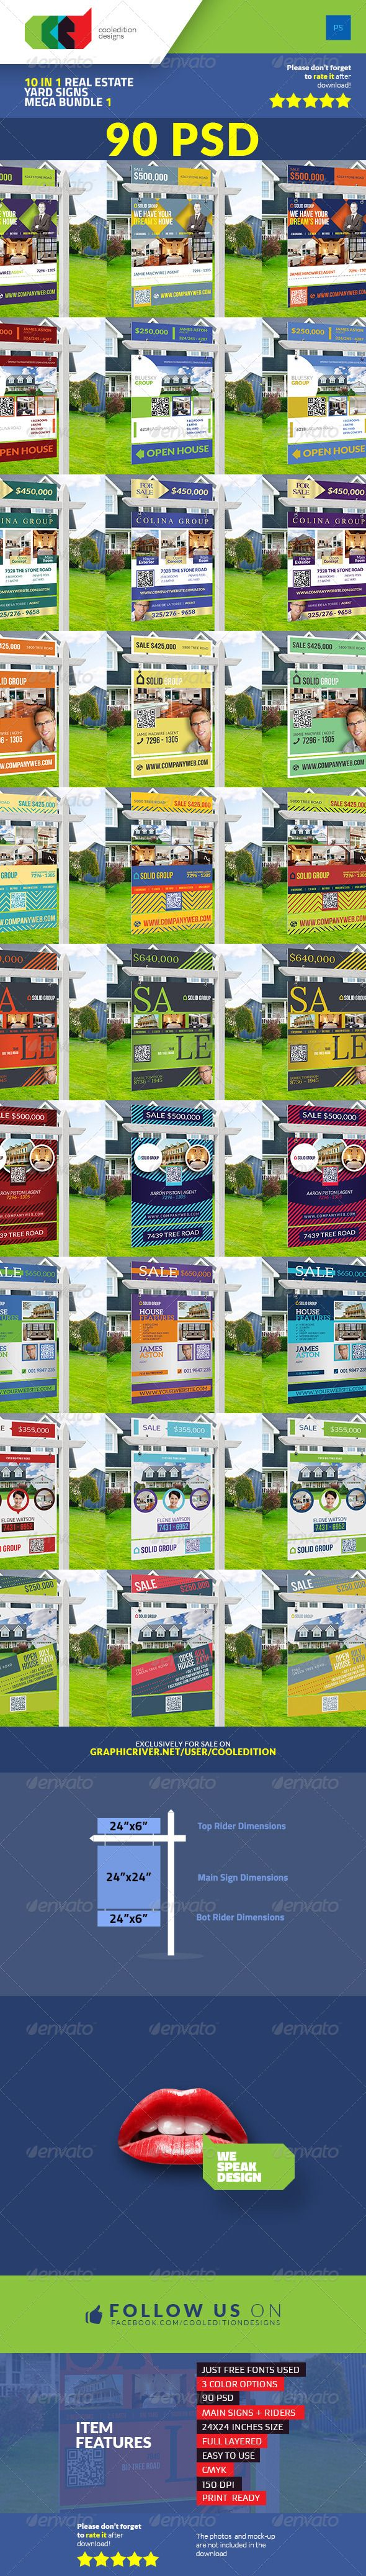 10 In 1 Real Estate Yard Signs Mega Bundle Template #design Download: http://graphicriver.net/item/10-in-1-real-estate-yard-signs-mega-bundle-1/7643913?ref=ksioks